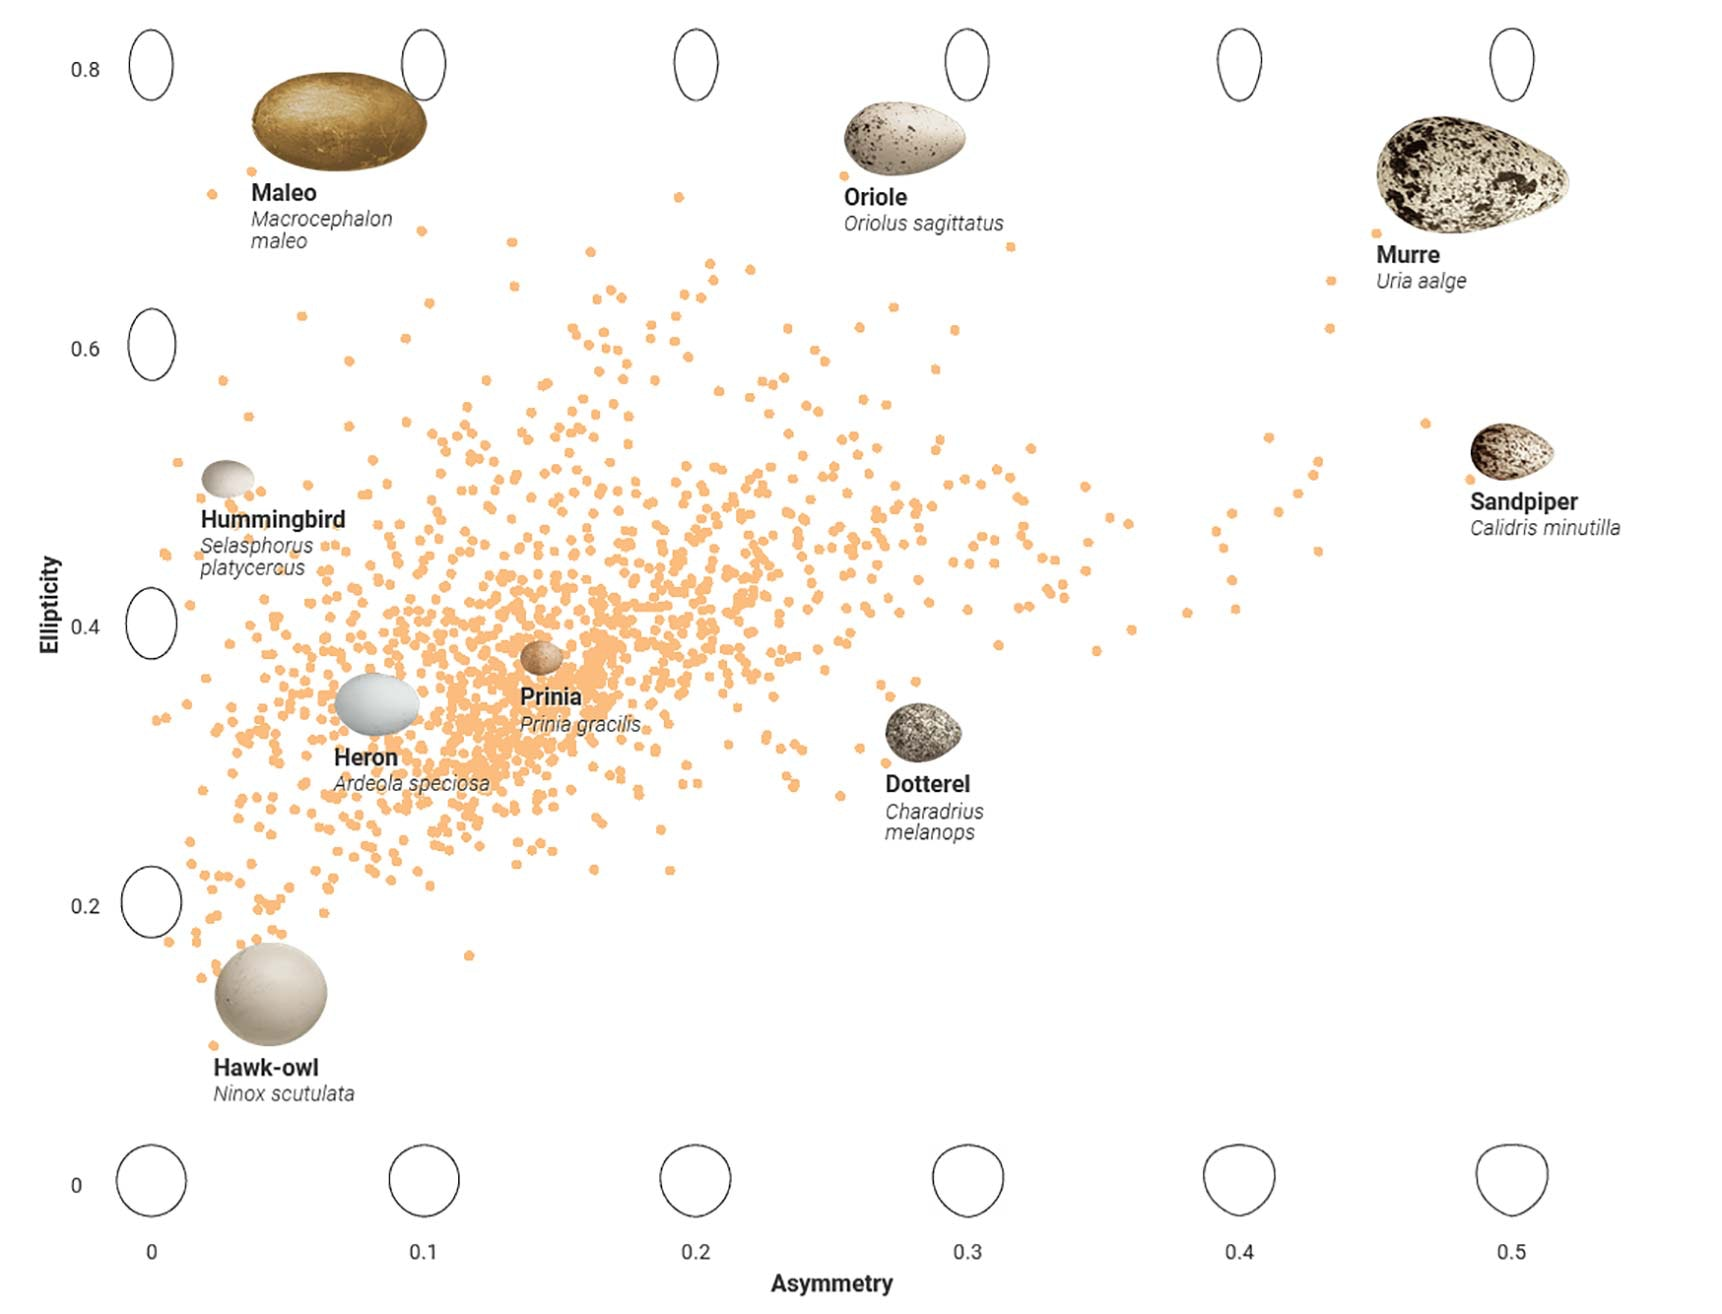 Data visualization showing the relationship between asymmetry and ellipticity in bird eggs